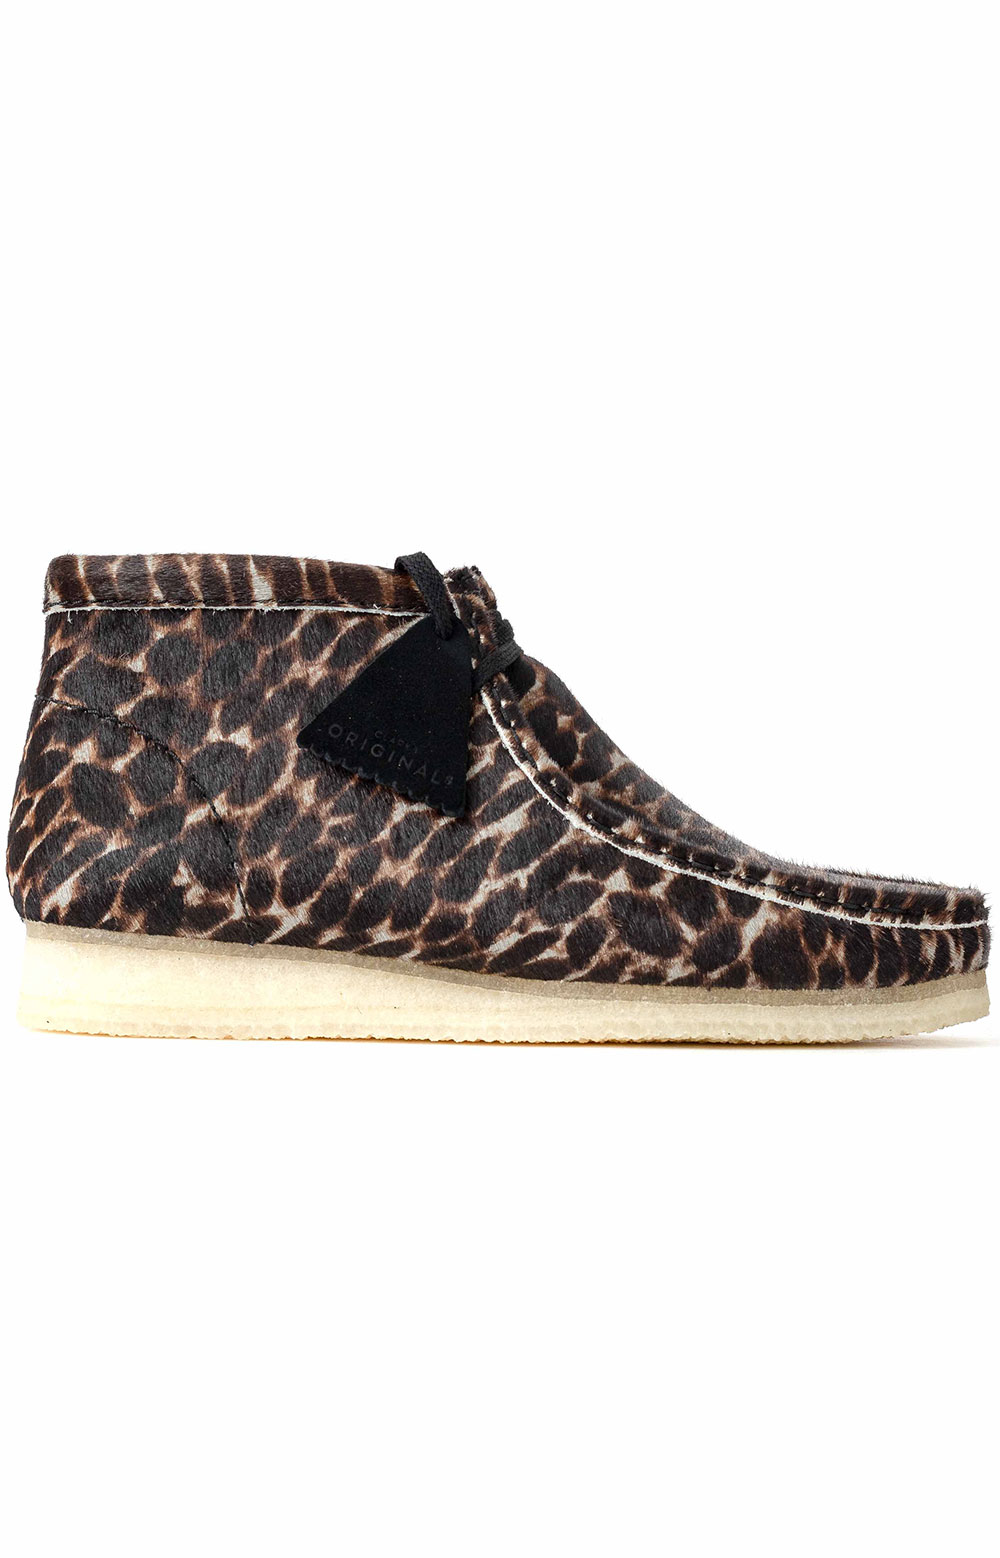 (26146759) Wallabee Boot - Black Animal Print